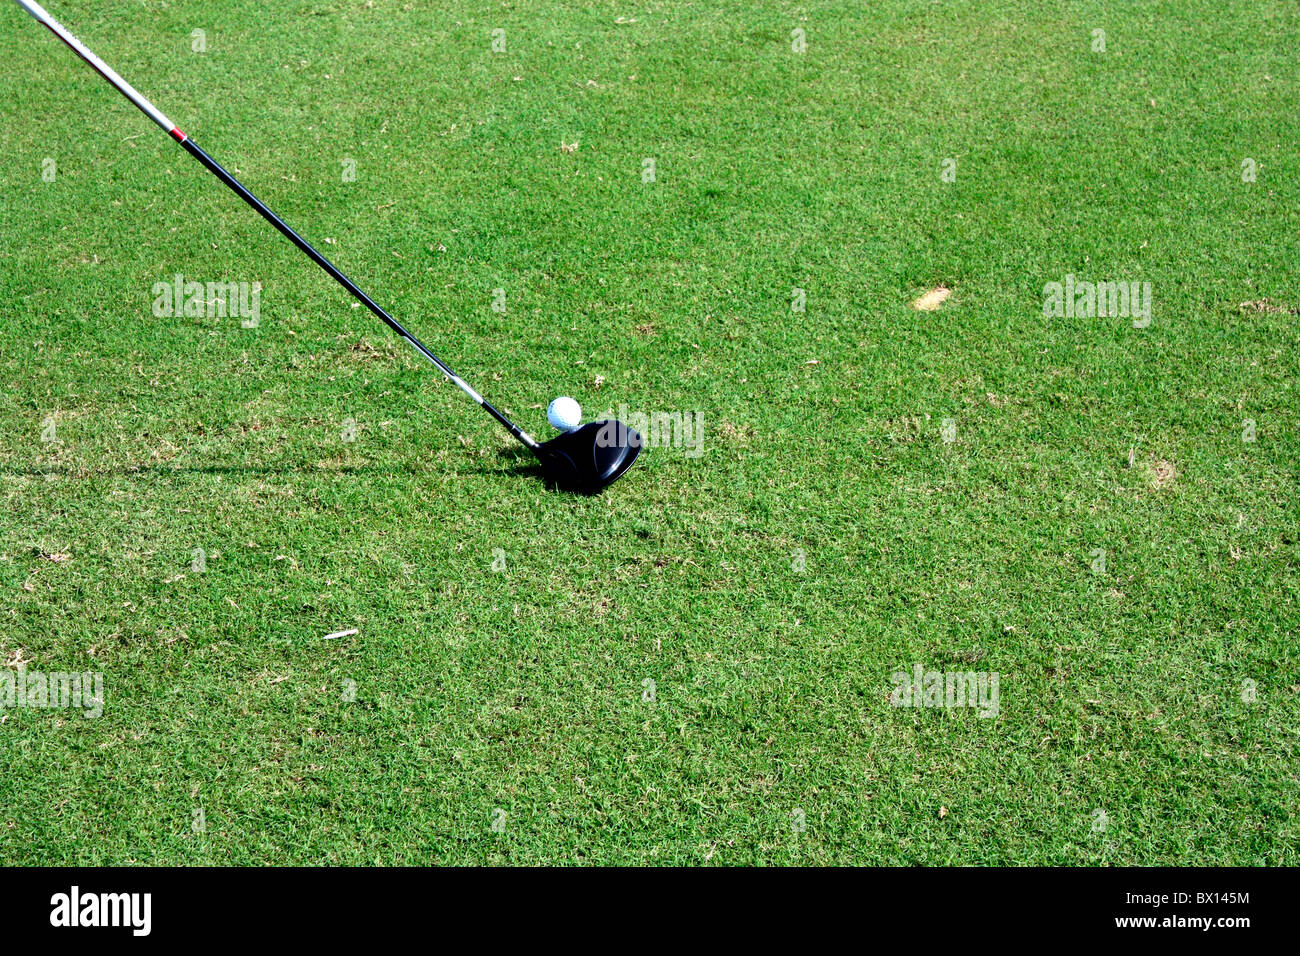 A driver placed to hit golf ball - Stock Image